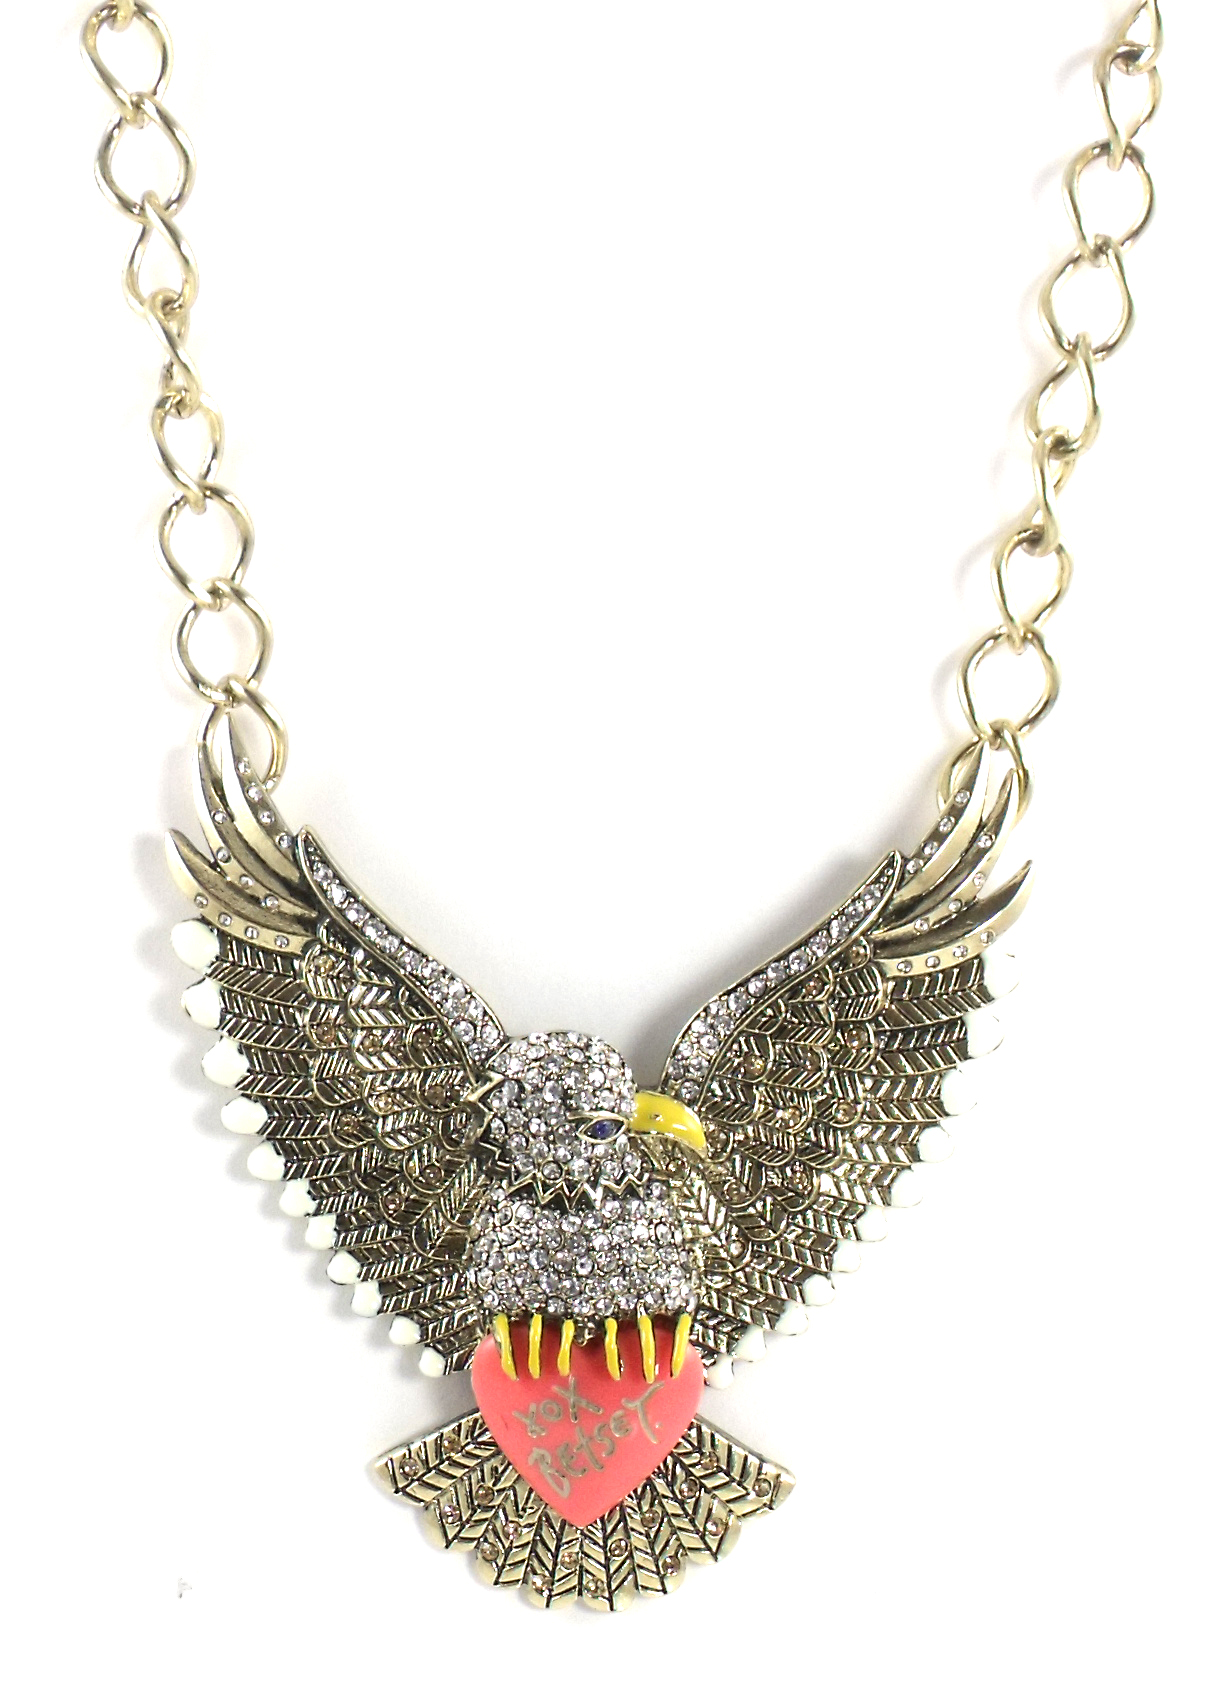 Betsey Johnson Jewelry Americana Eagle Statement Necklace